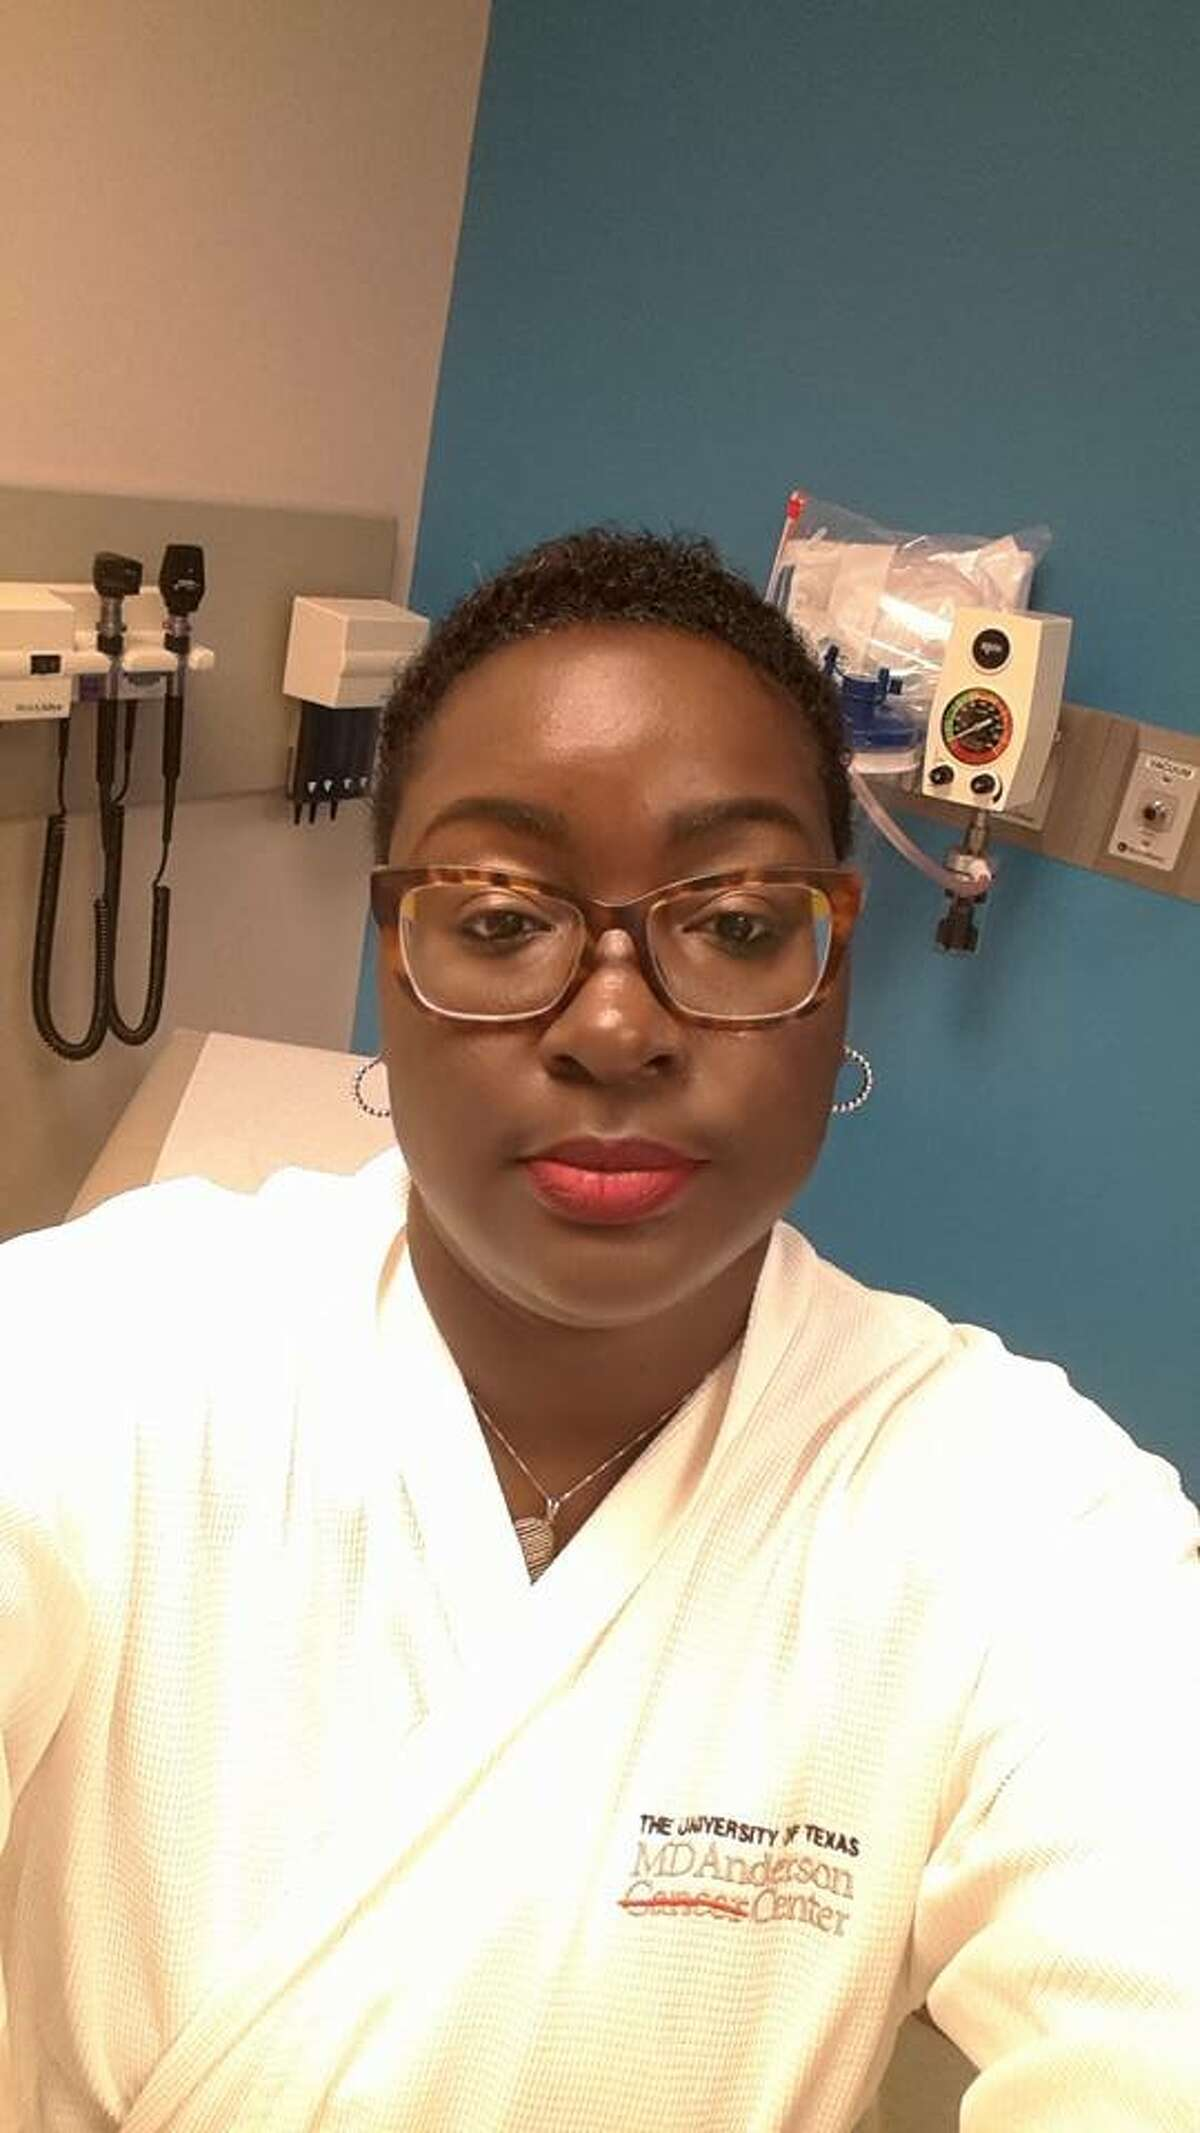 LaShonda Jackson's work as an autopsy technician took on a new meaning after a cancer diagnosis.